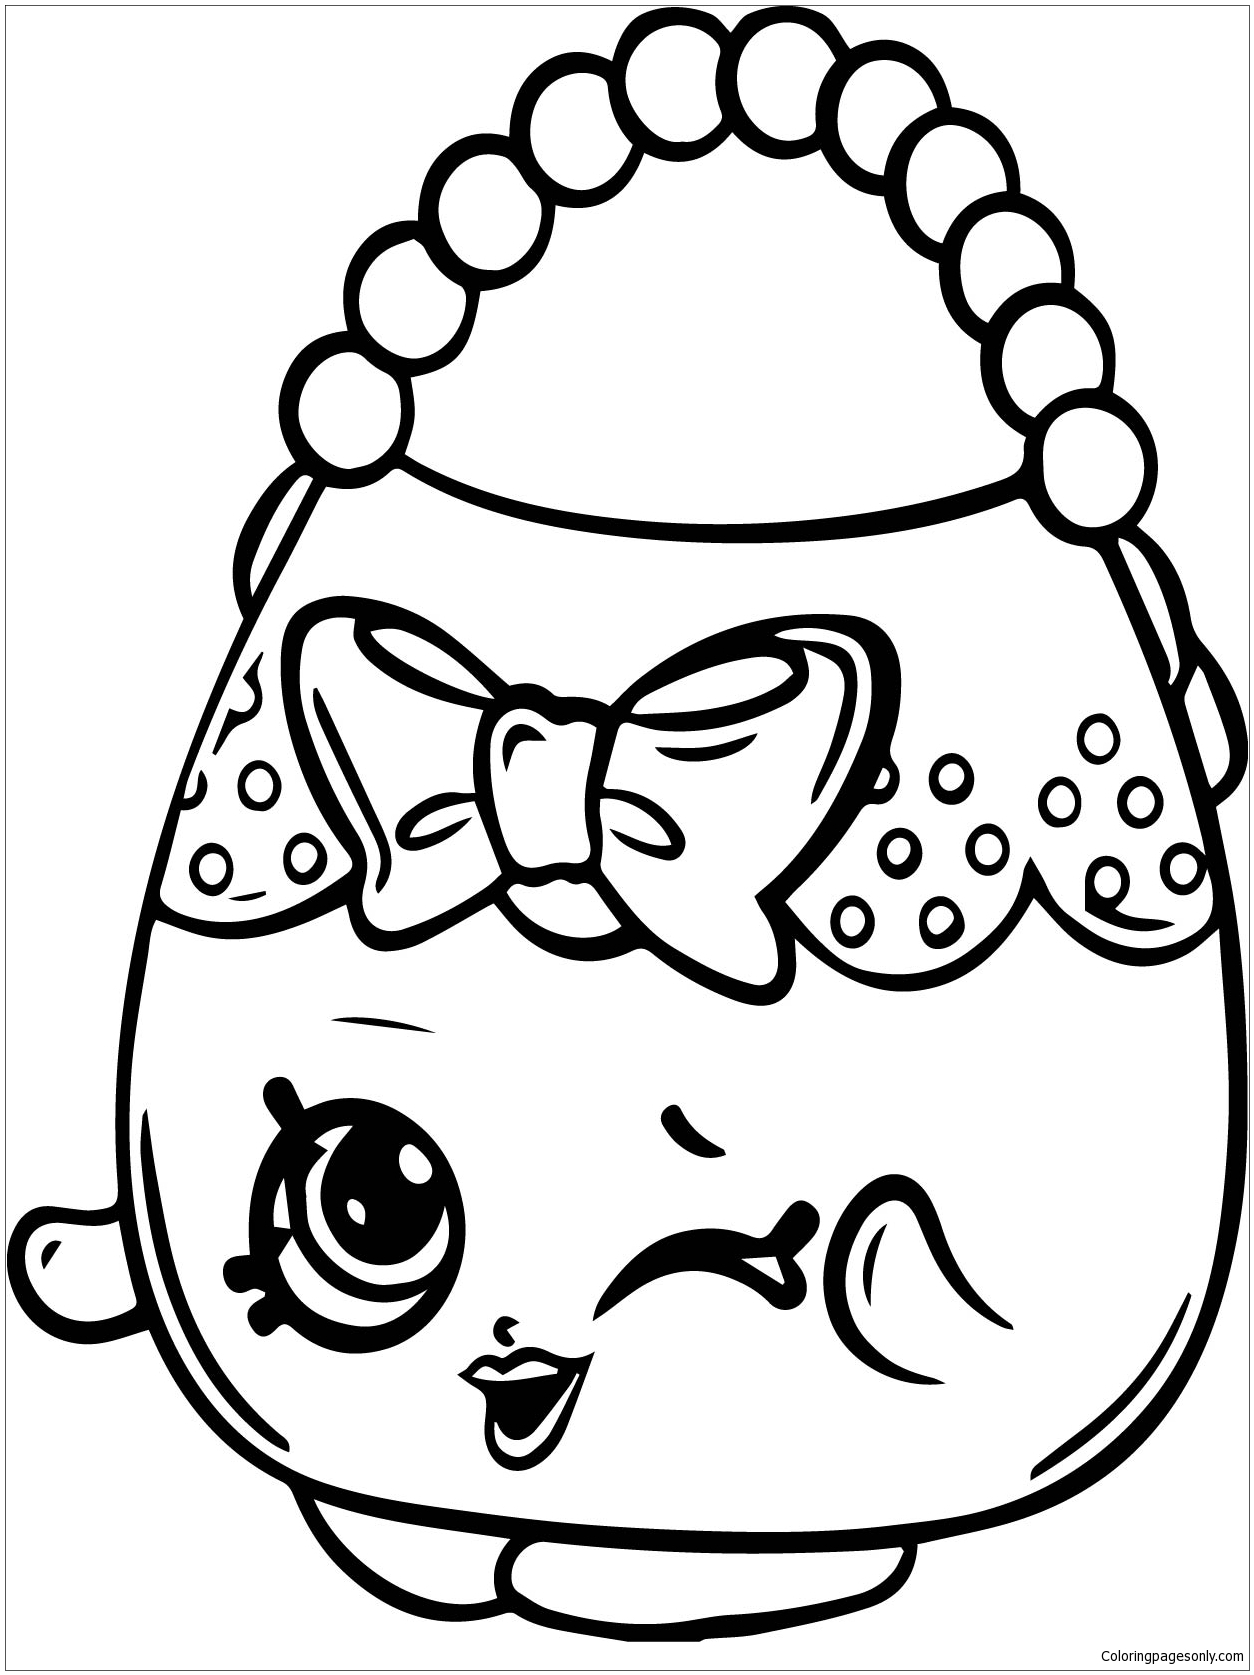 1254x1675 Shopkins Coloring Pages Page Of Shopkins Coloring Sheets